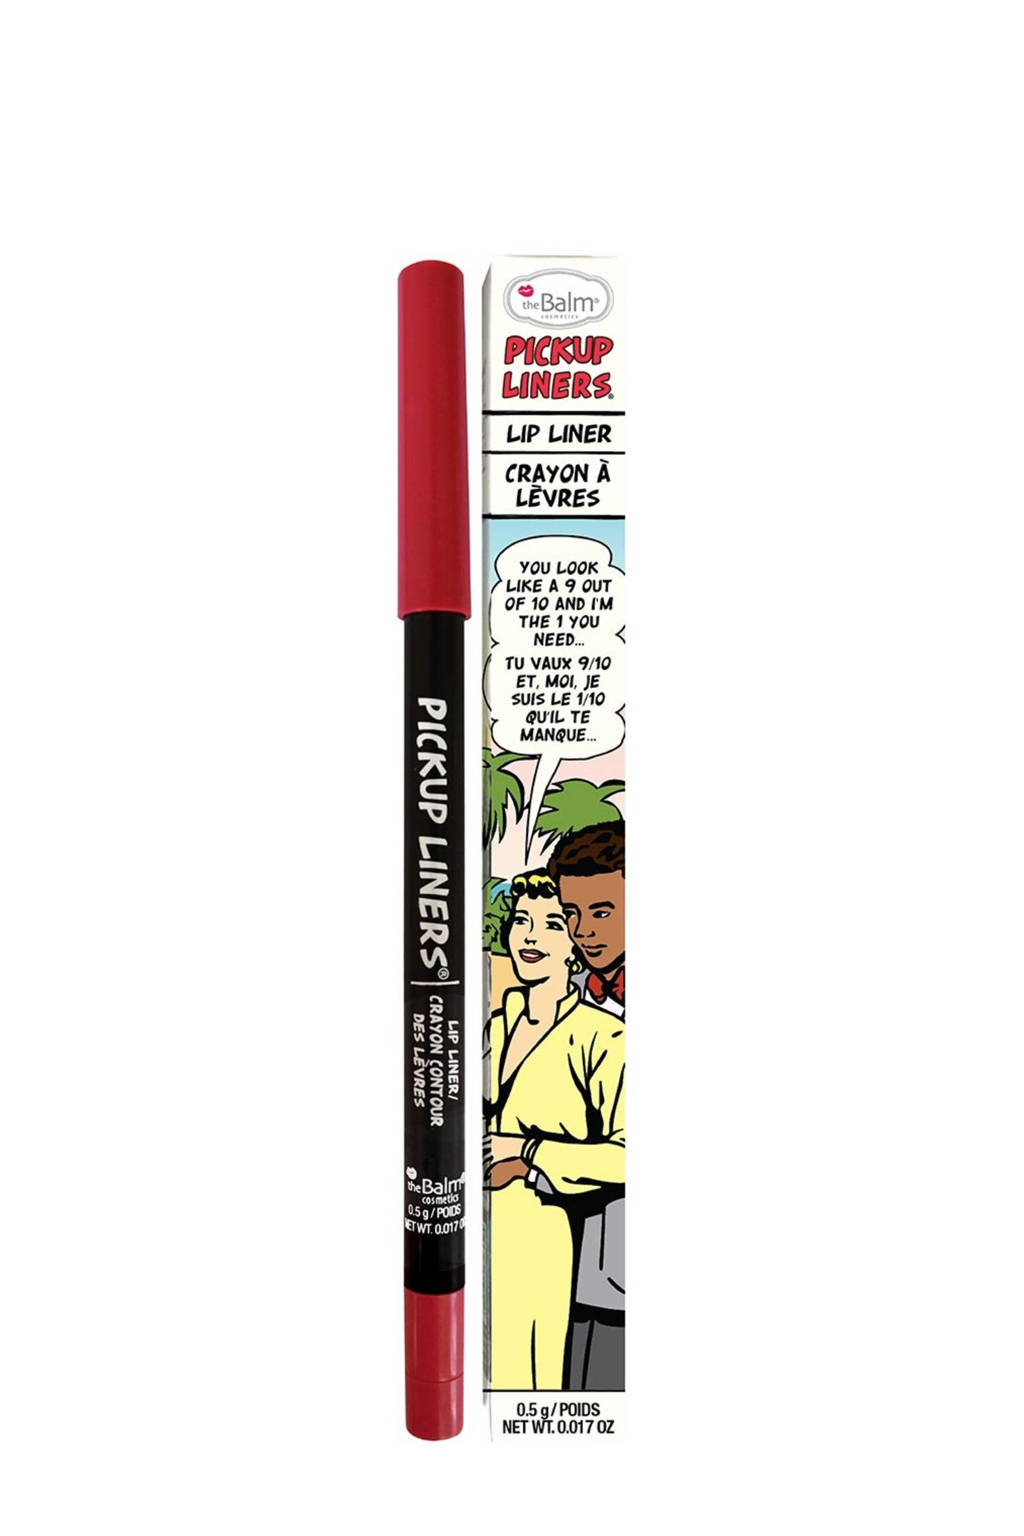 The Balm Pick up lippotlood - The 1 You Need, cool magenta